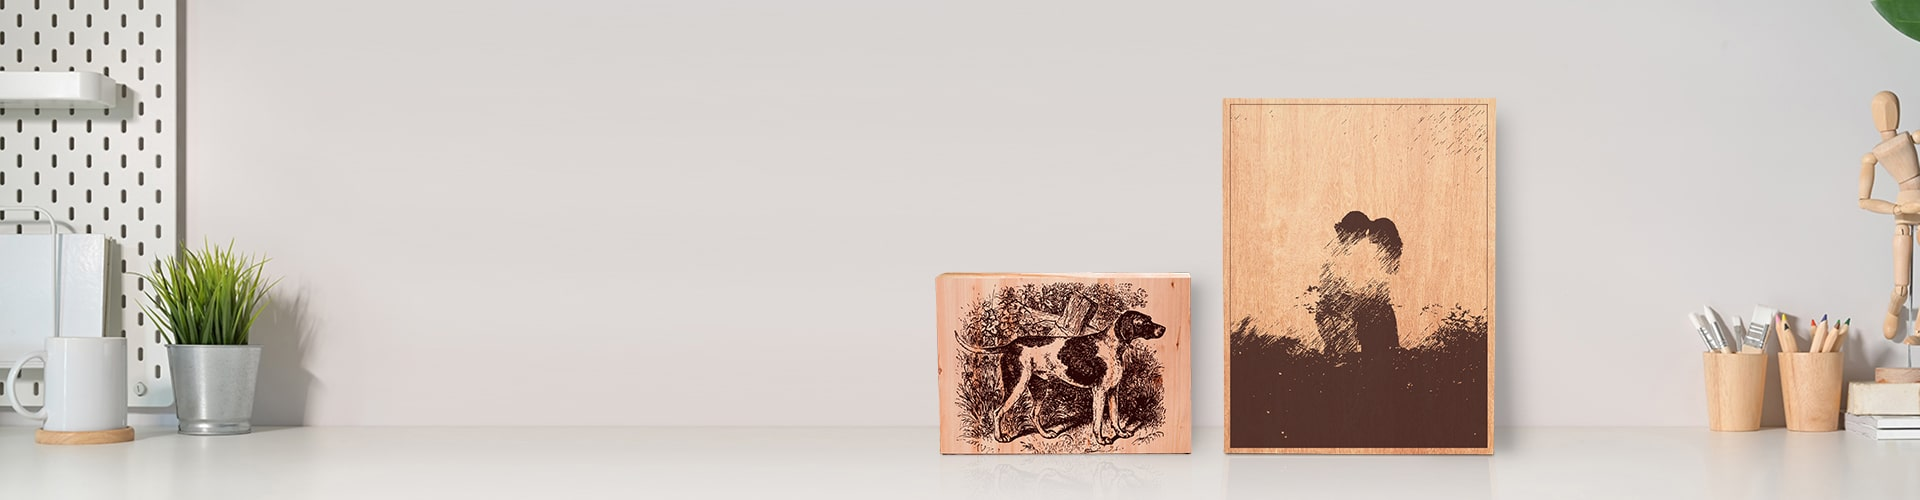 Engraved Wooden Plaques